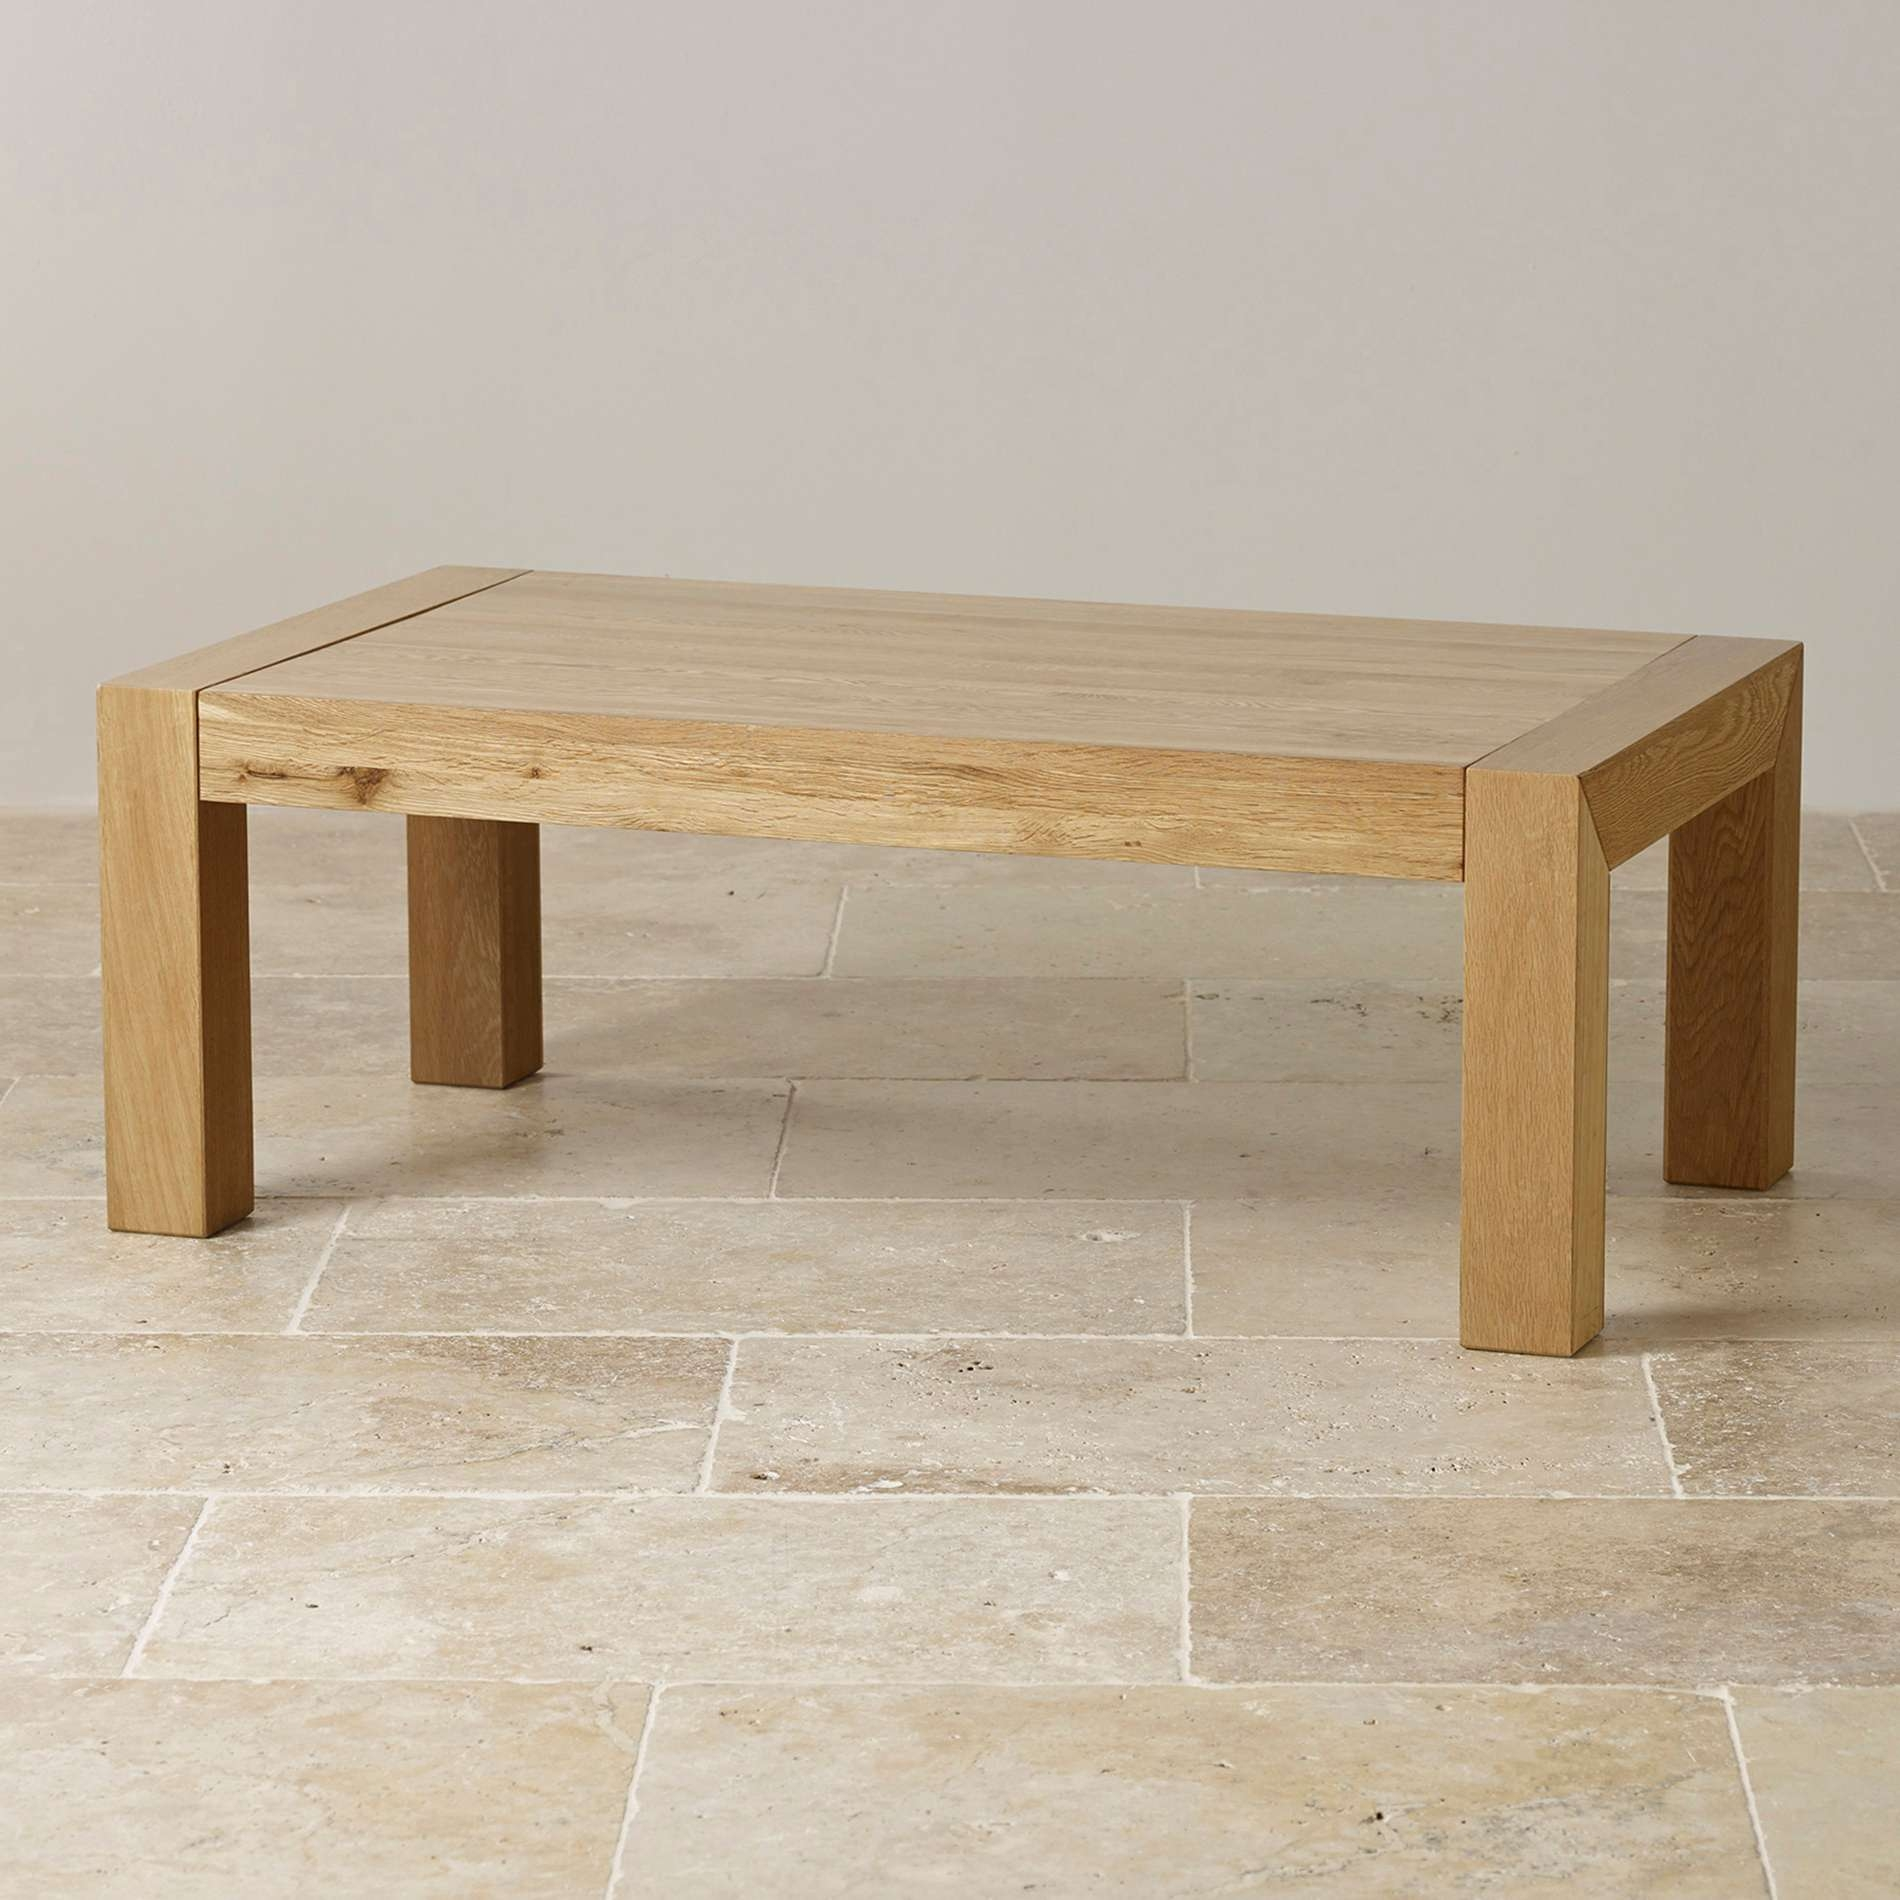 House Furniture Ideas With Latest Low Oak Coffee Tables (View 2 of 20)